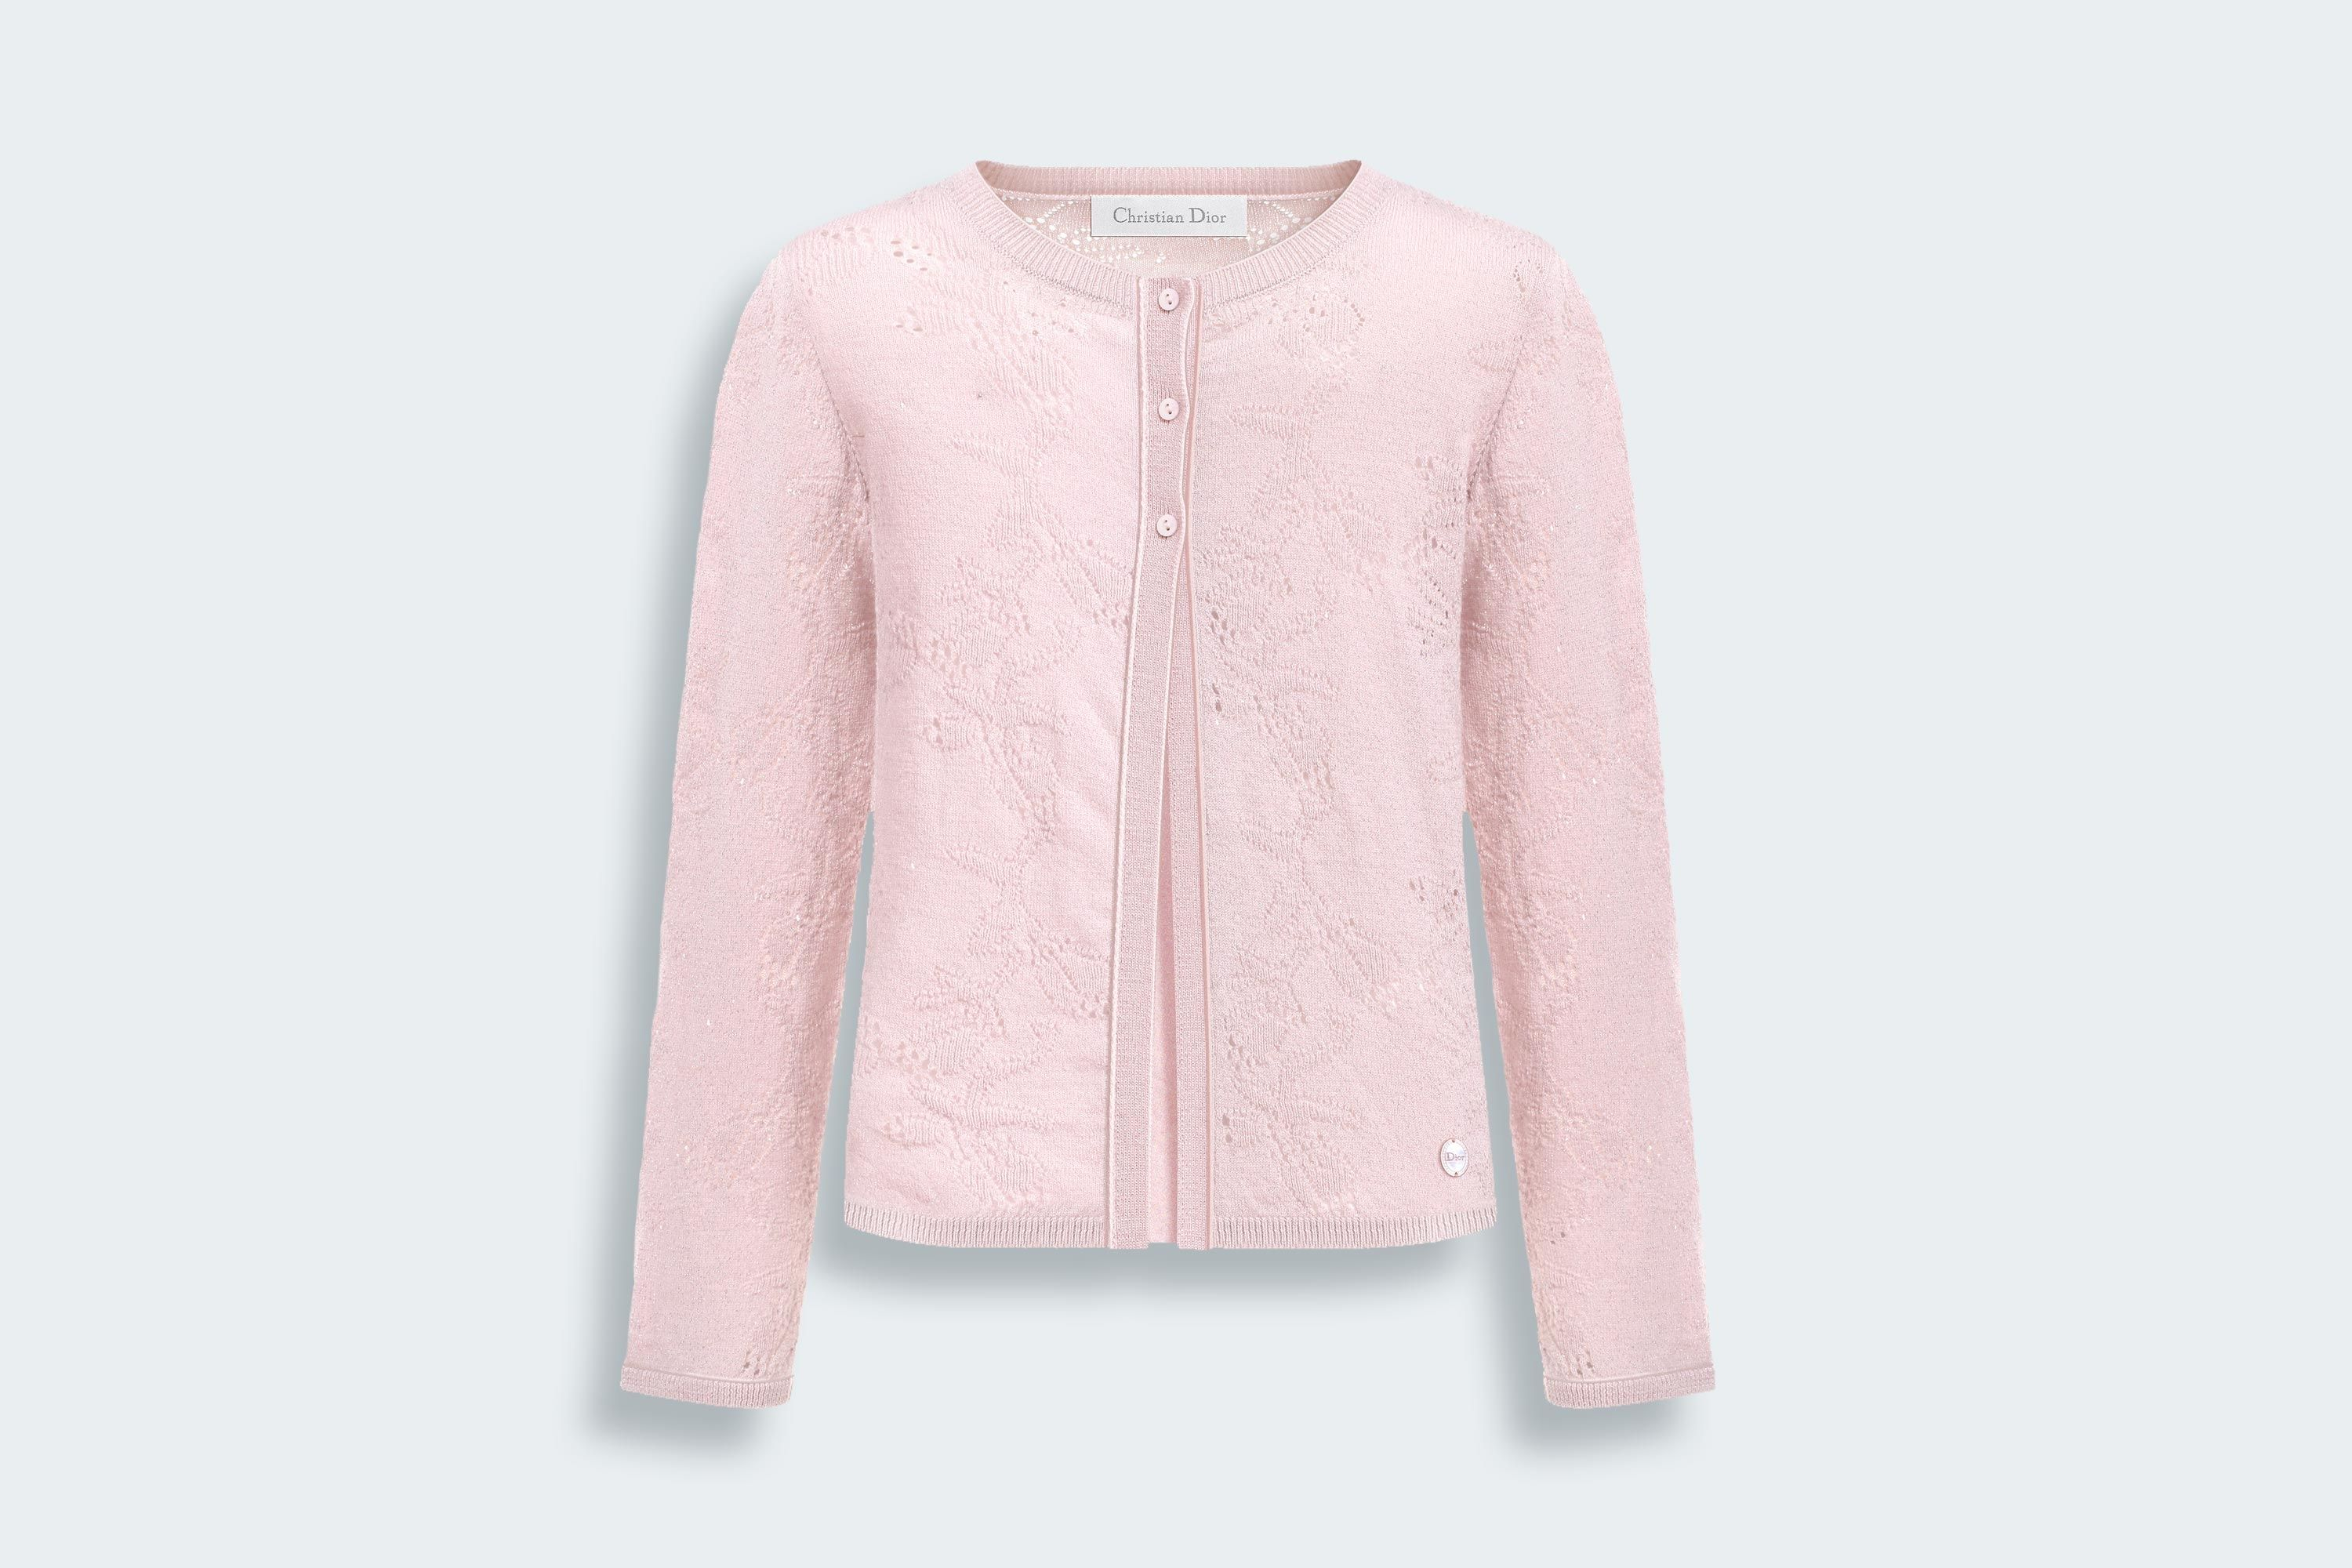 Wool cardigan with open-worked roses - Girls Dior